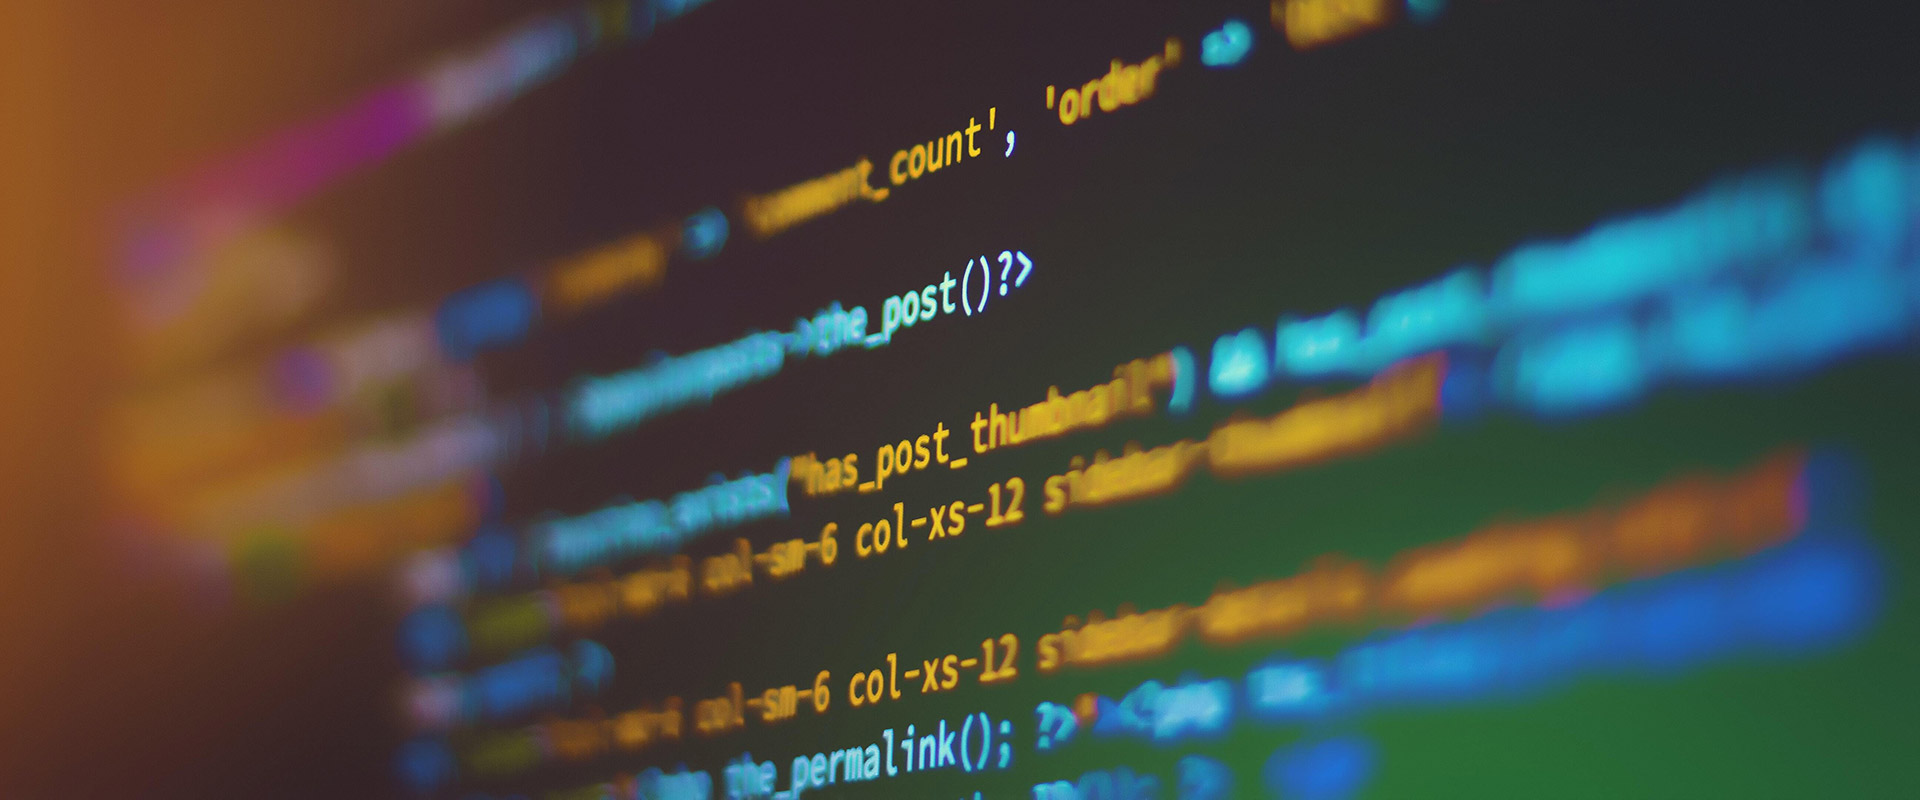 Typescript: Tips and Tricks for Improving Your Coding skills [Part 2]